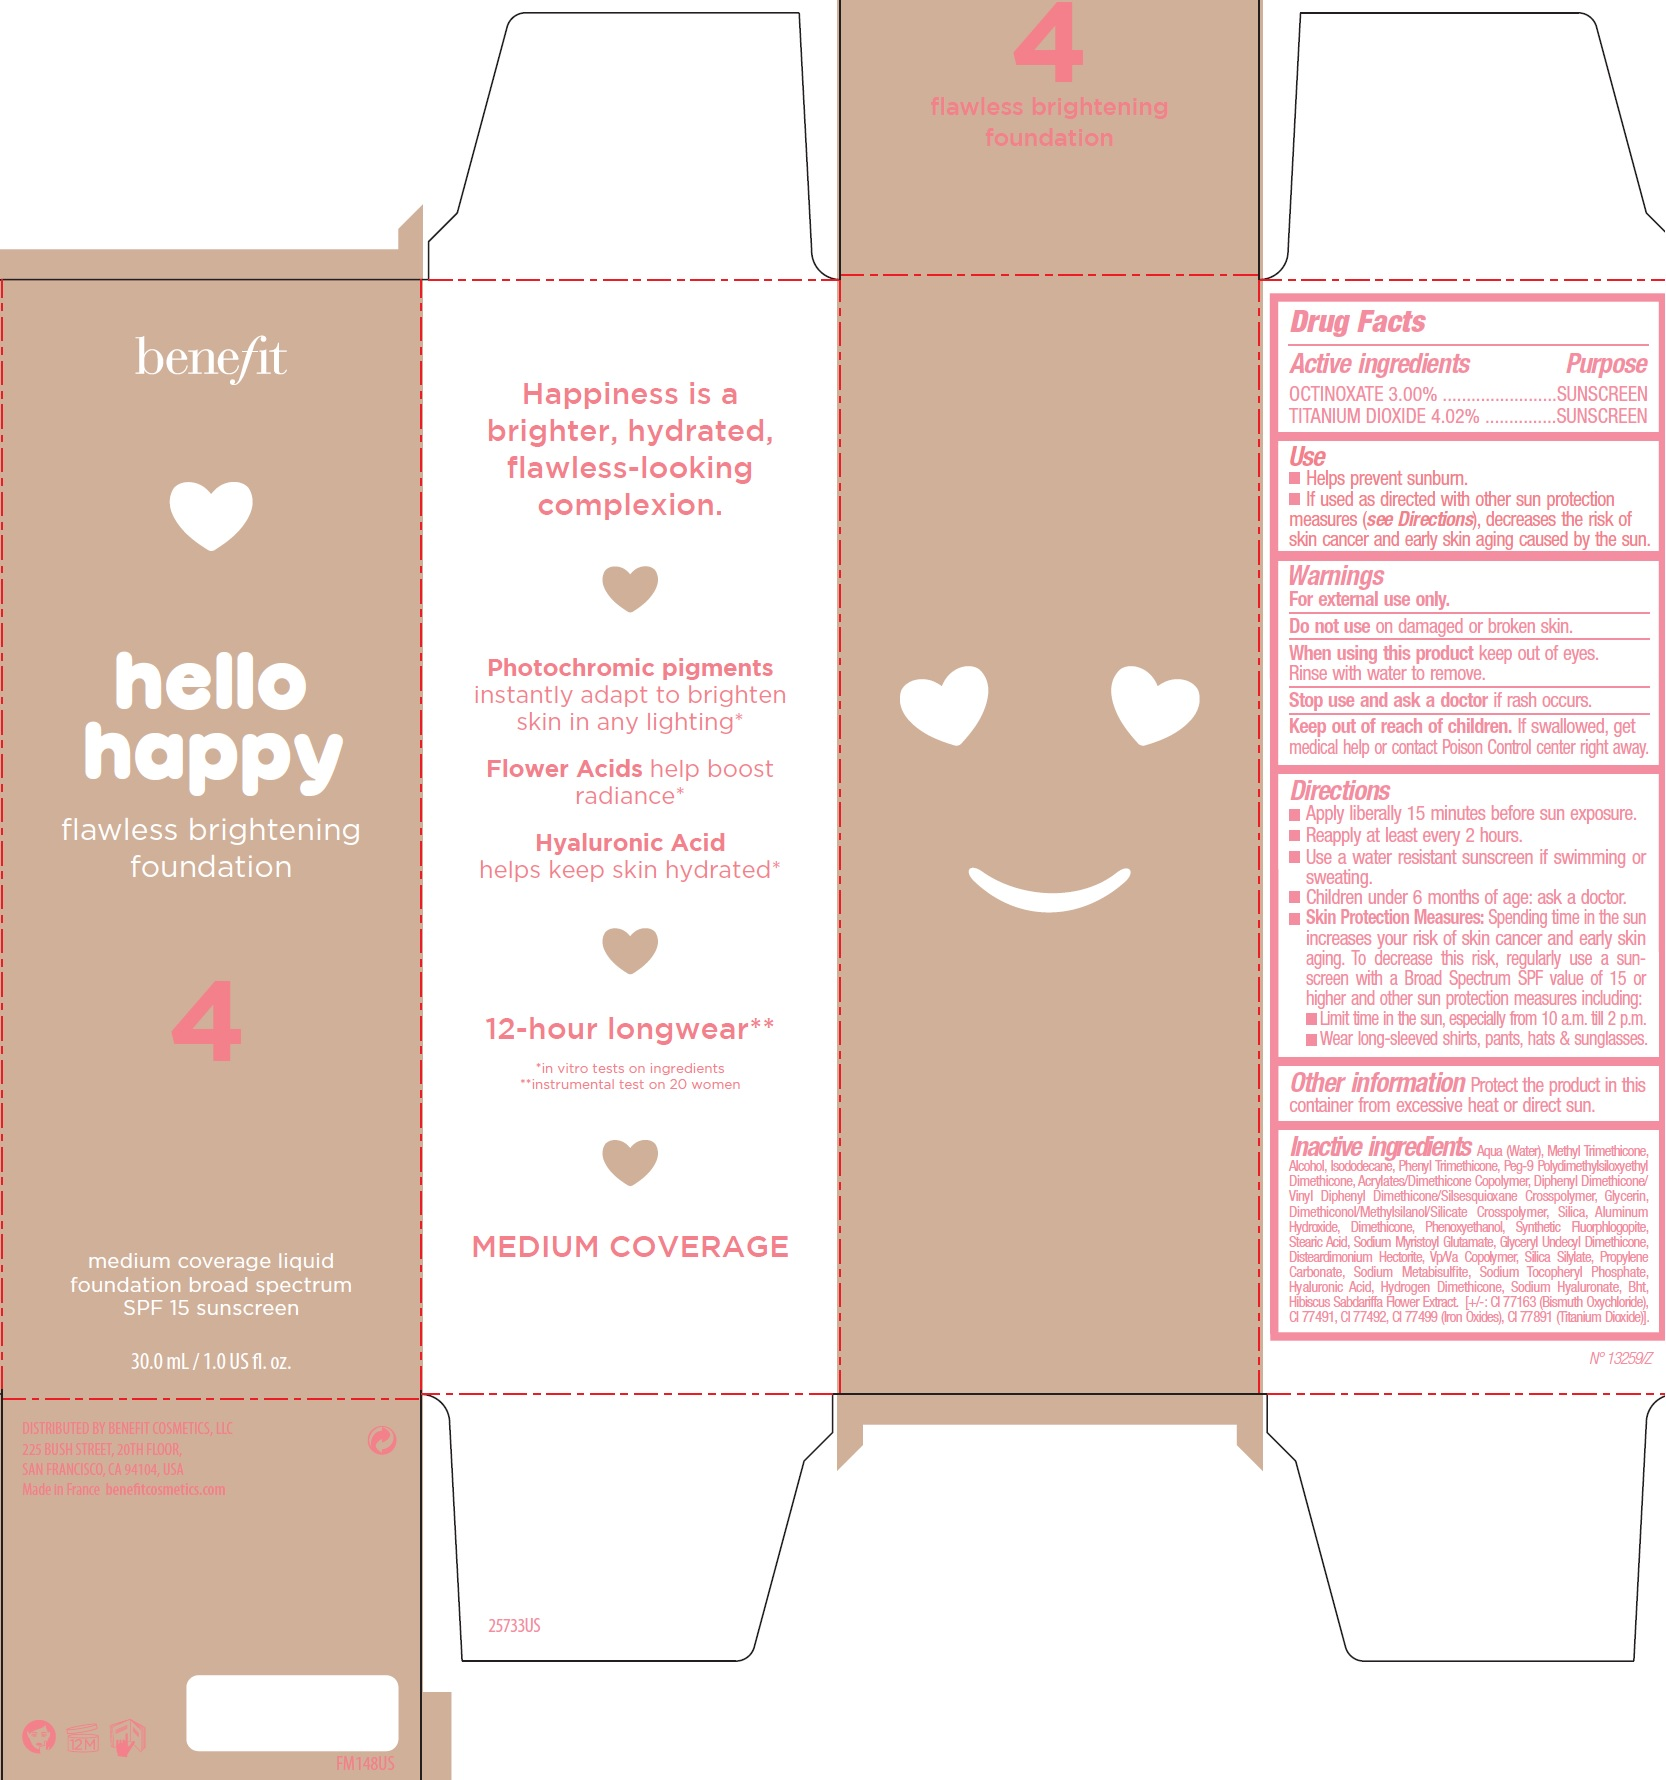 OCTINOXATE, TITANIUM DIOXIDE - Shade 4 (Benefit Hello Happy Flawless Brightening Foundation SPF15)